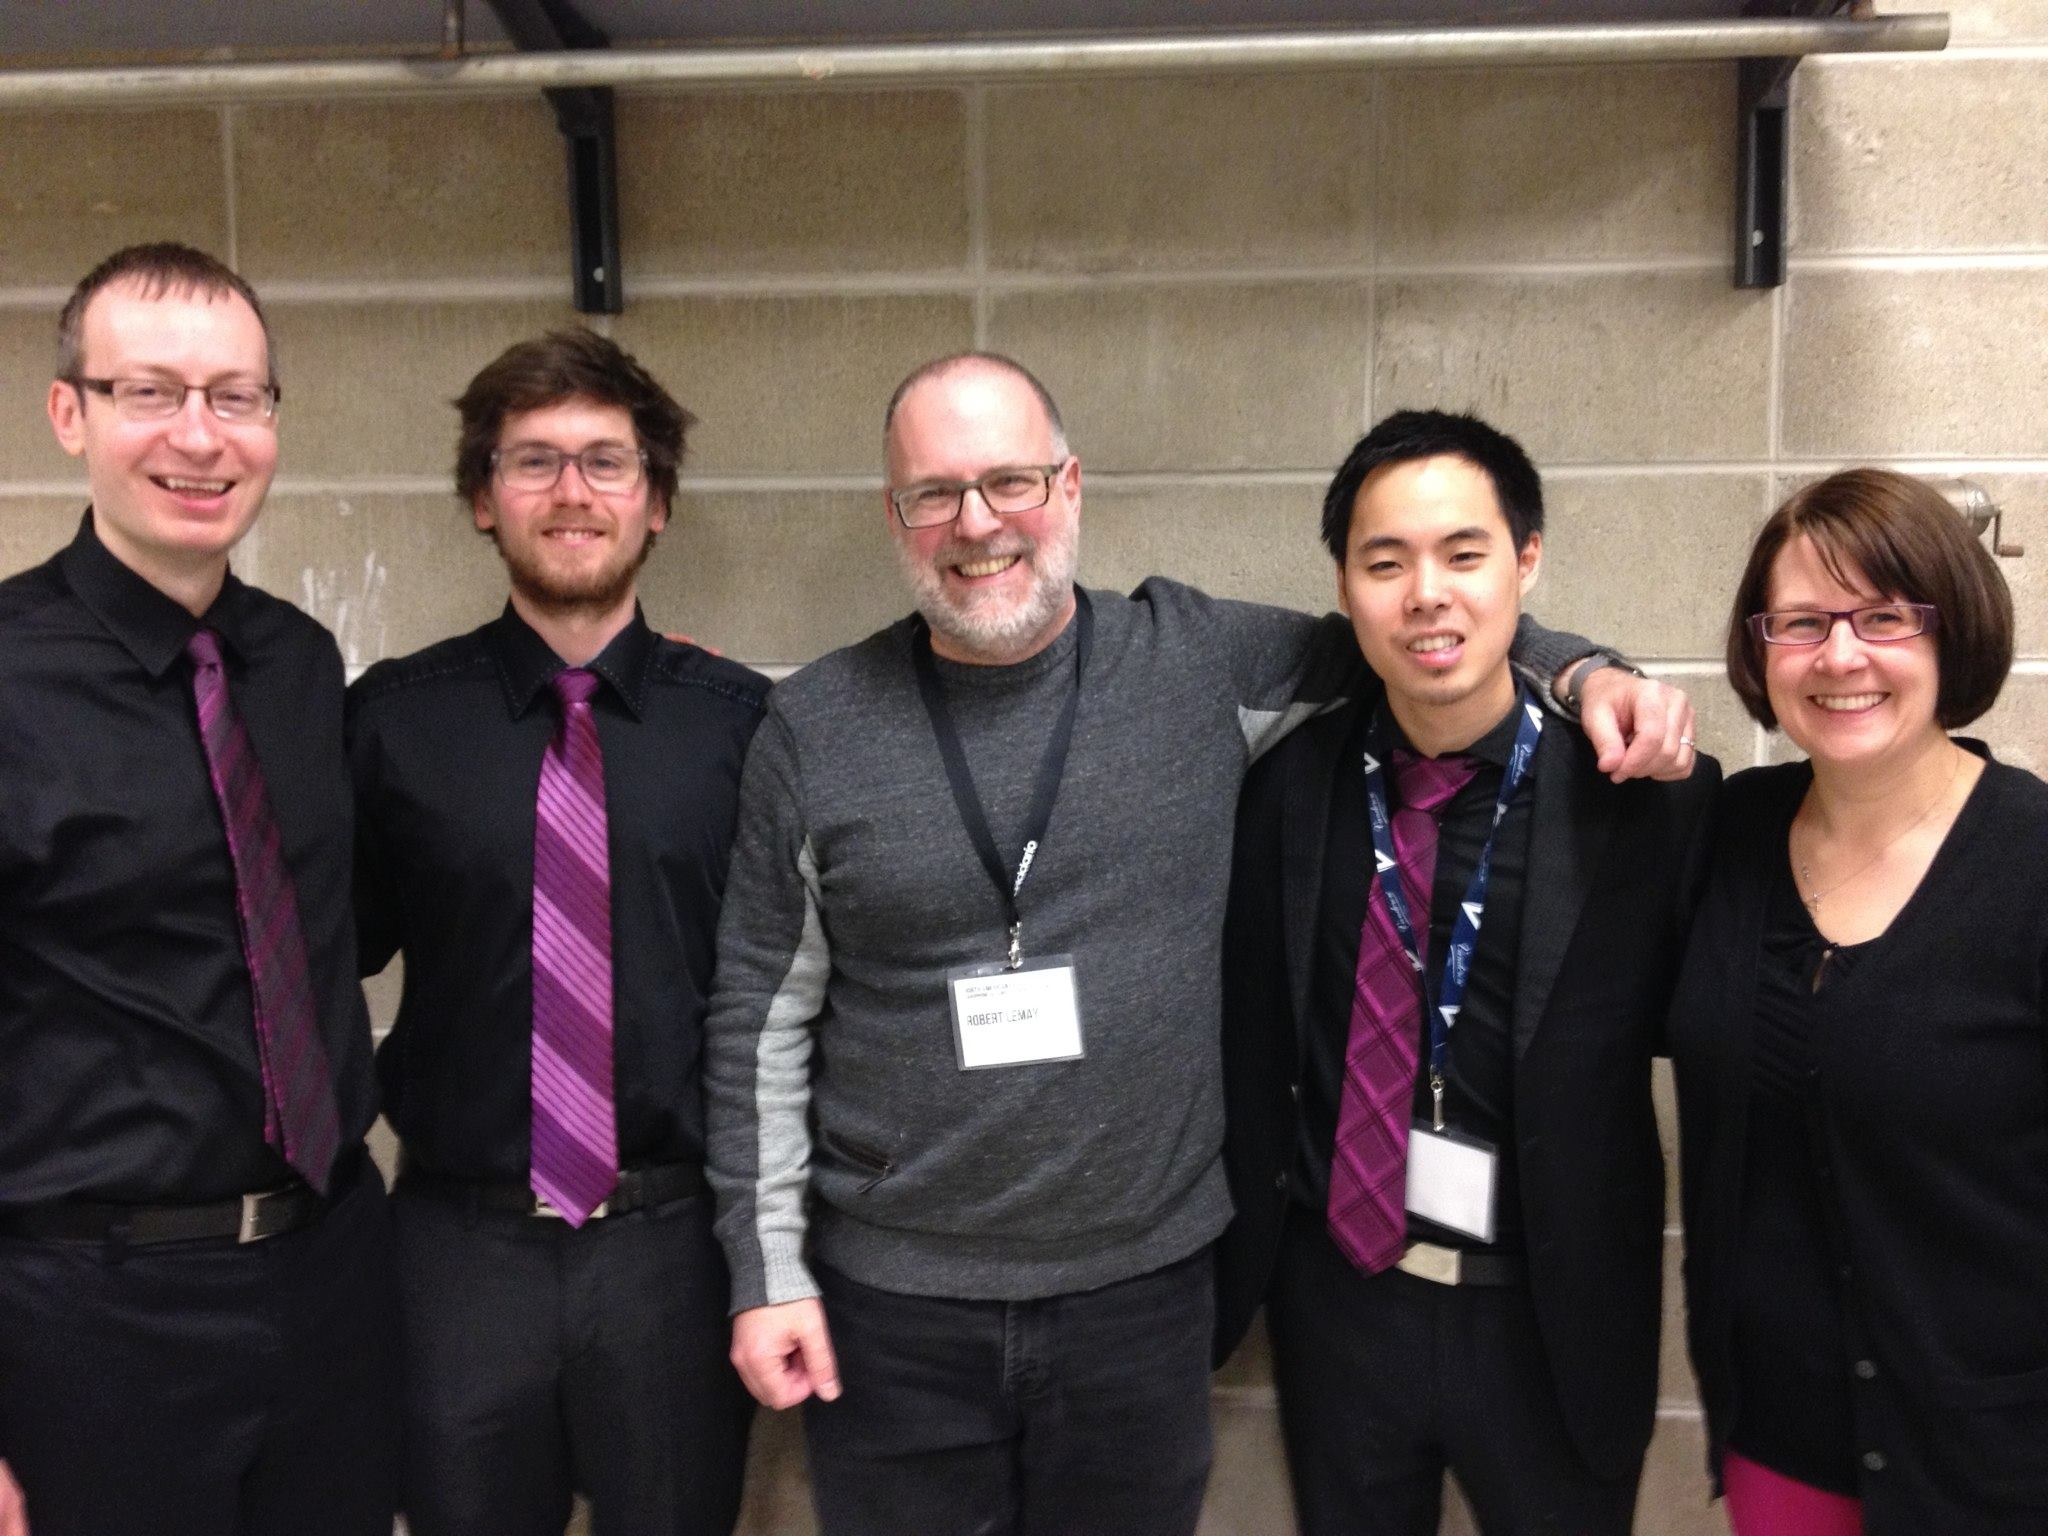 Proteus at the 2014 NASA Biennial Conference in Illinois with composer Robert Lemay